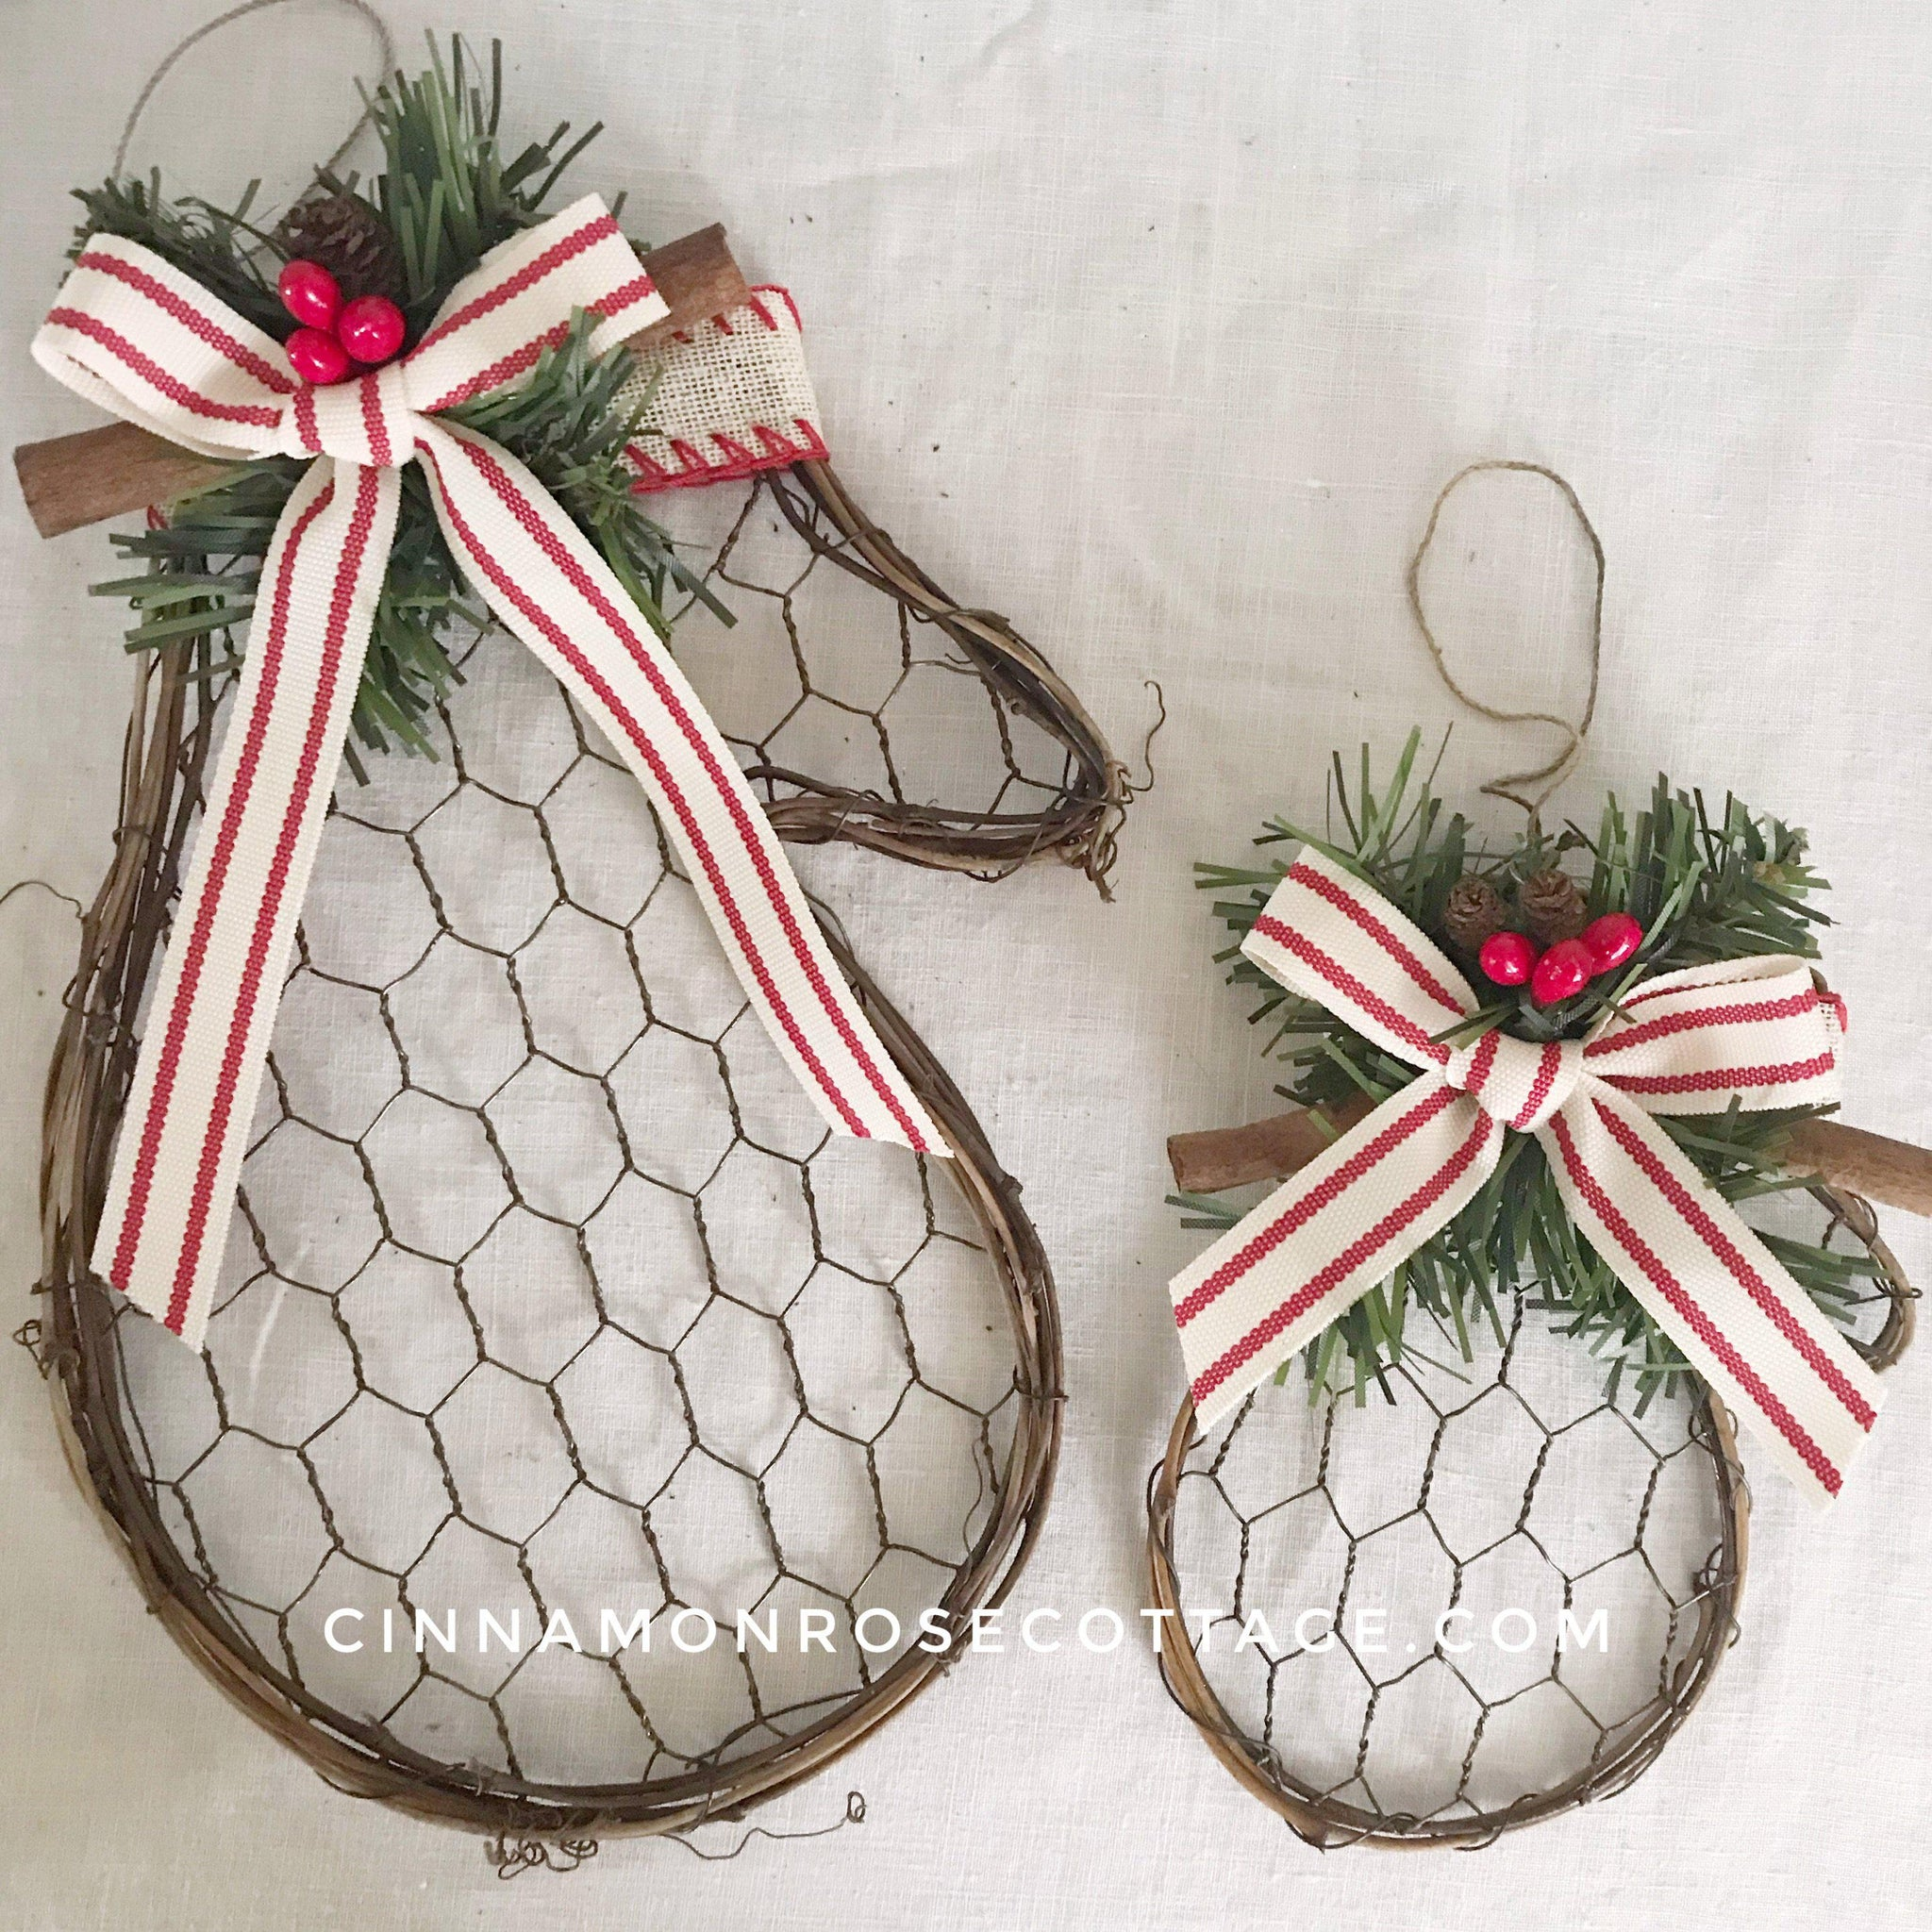 Chicken Wire Christmas Mitten With Pillow Tick Ribbon-Cinnamon Rose Cottage